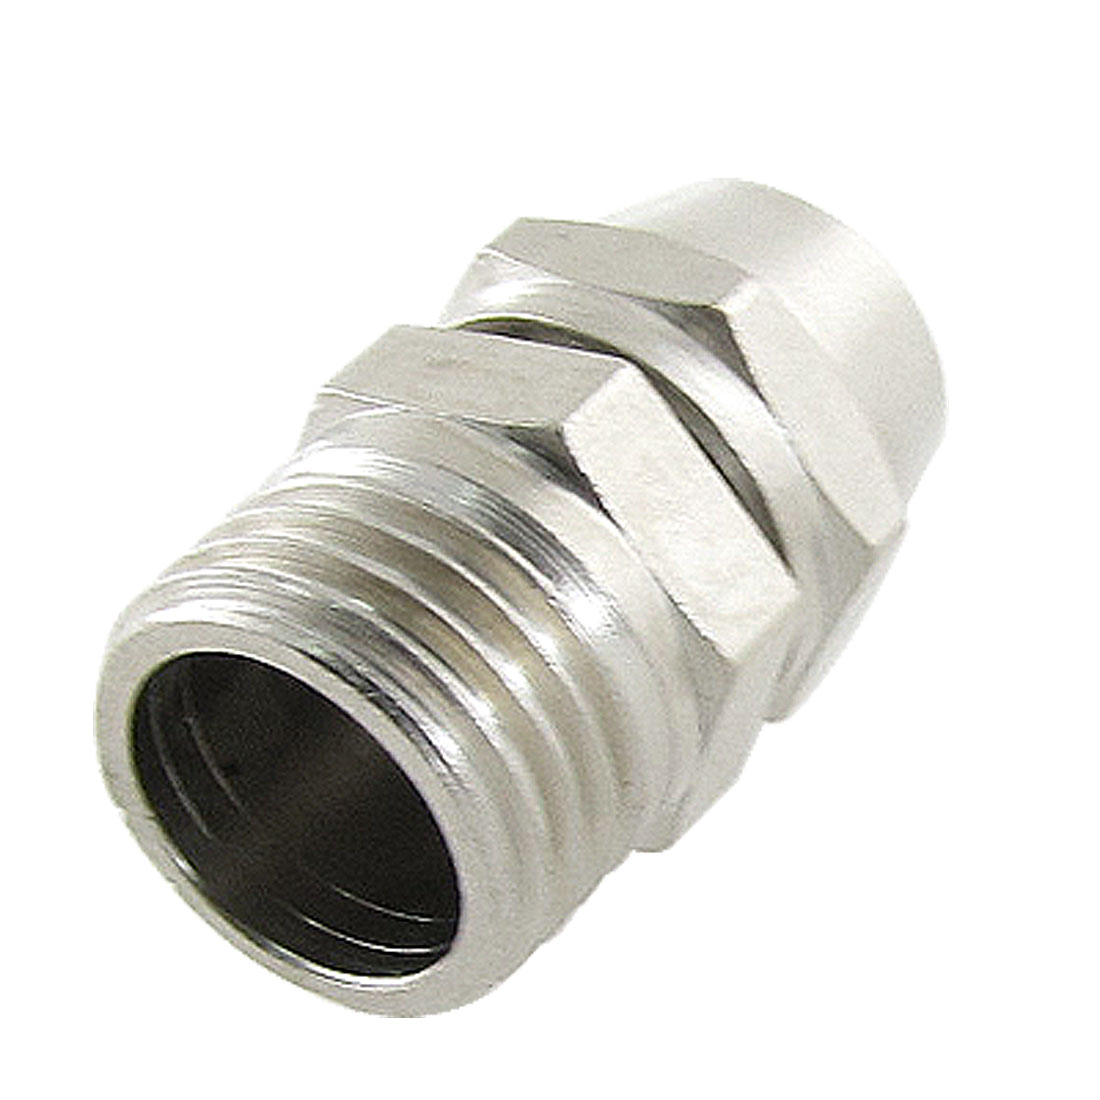 12.7mm Male Threaded 5mm x 8mm Air Hose Tube Straight Quick Coupler Fitting